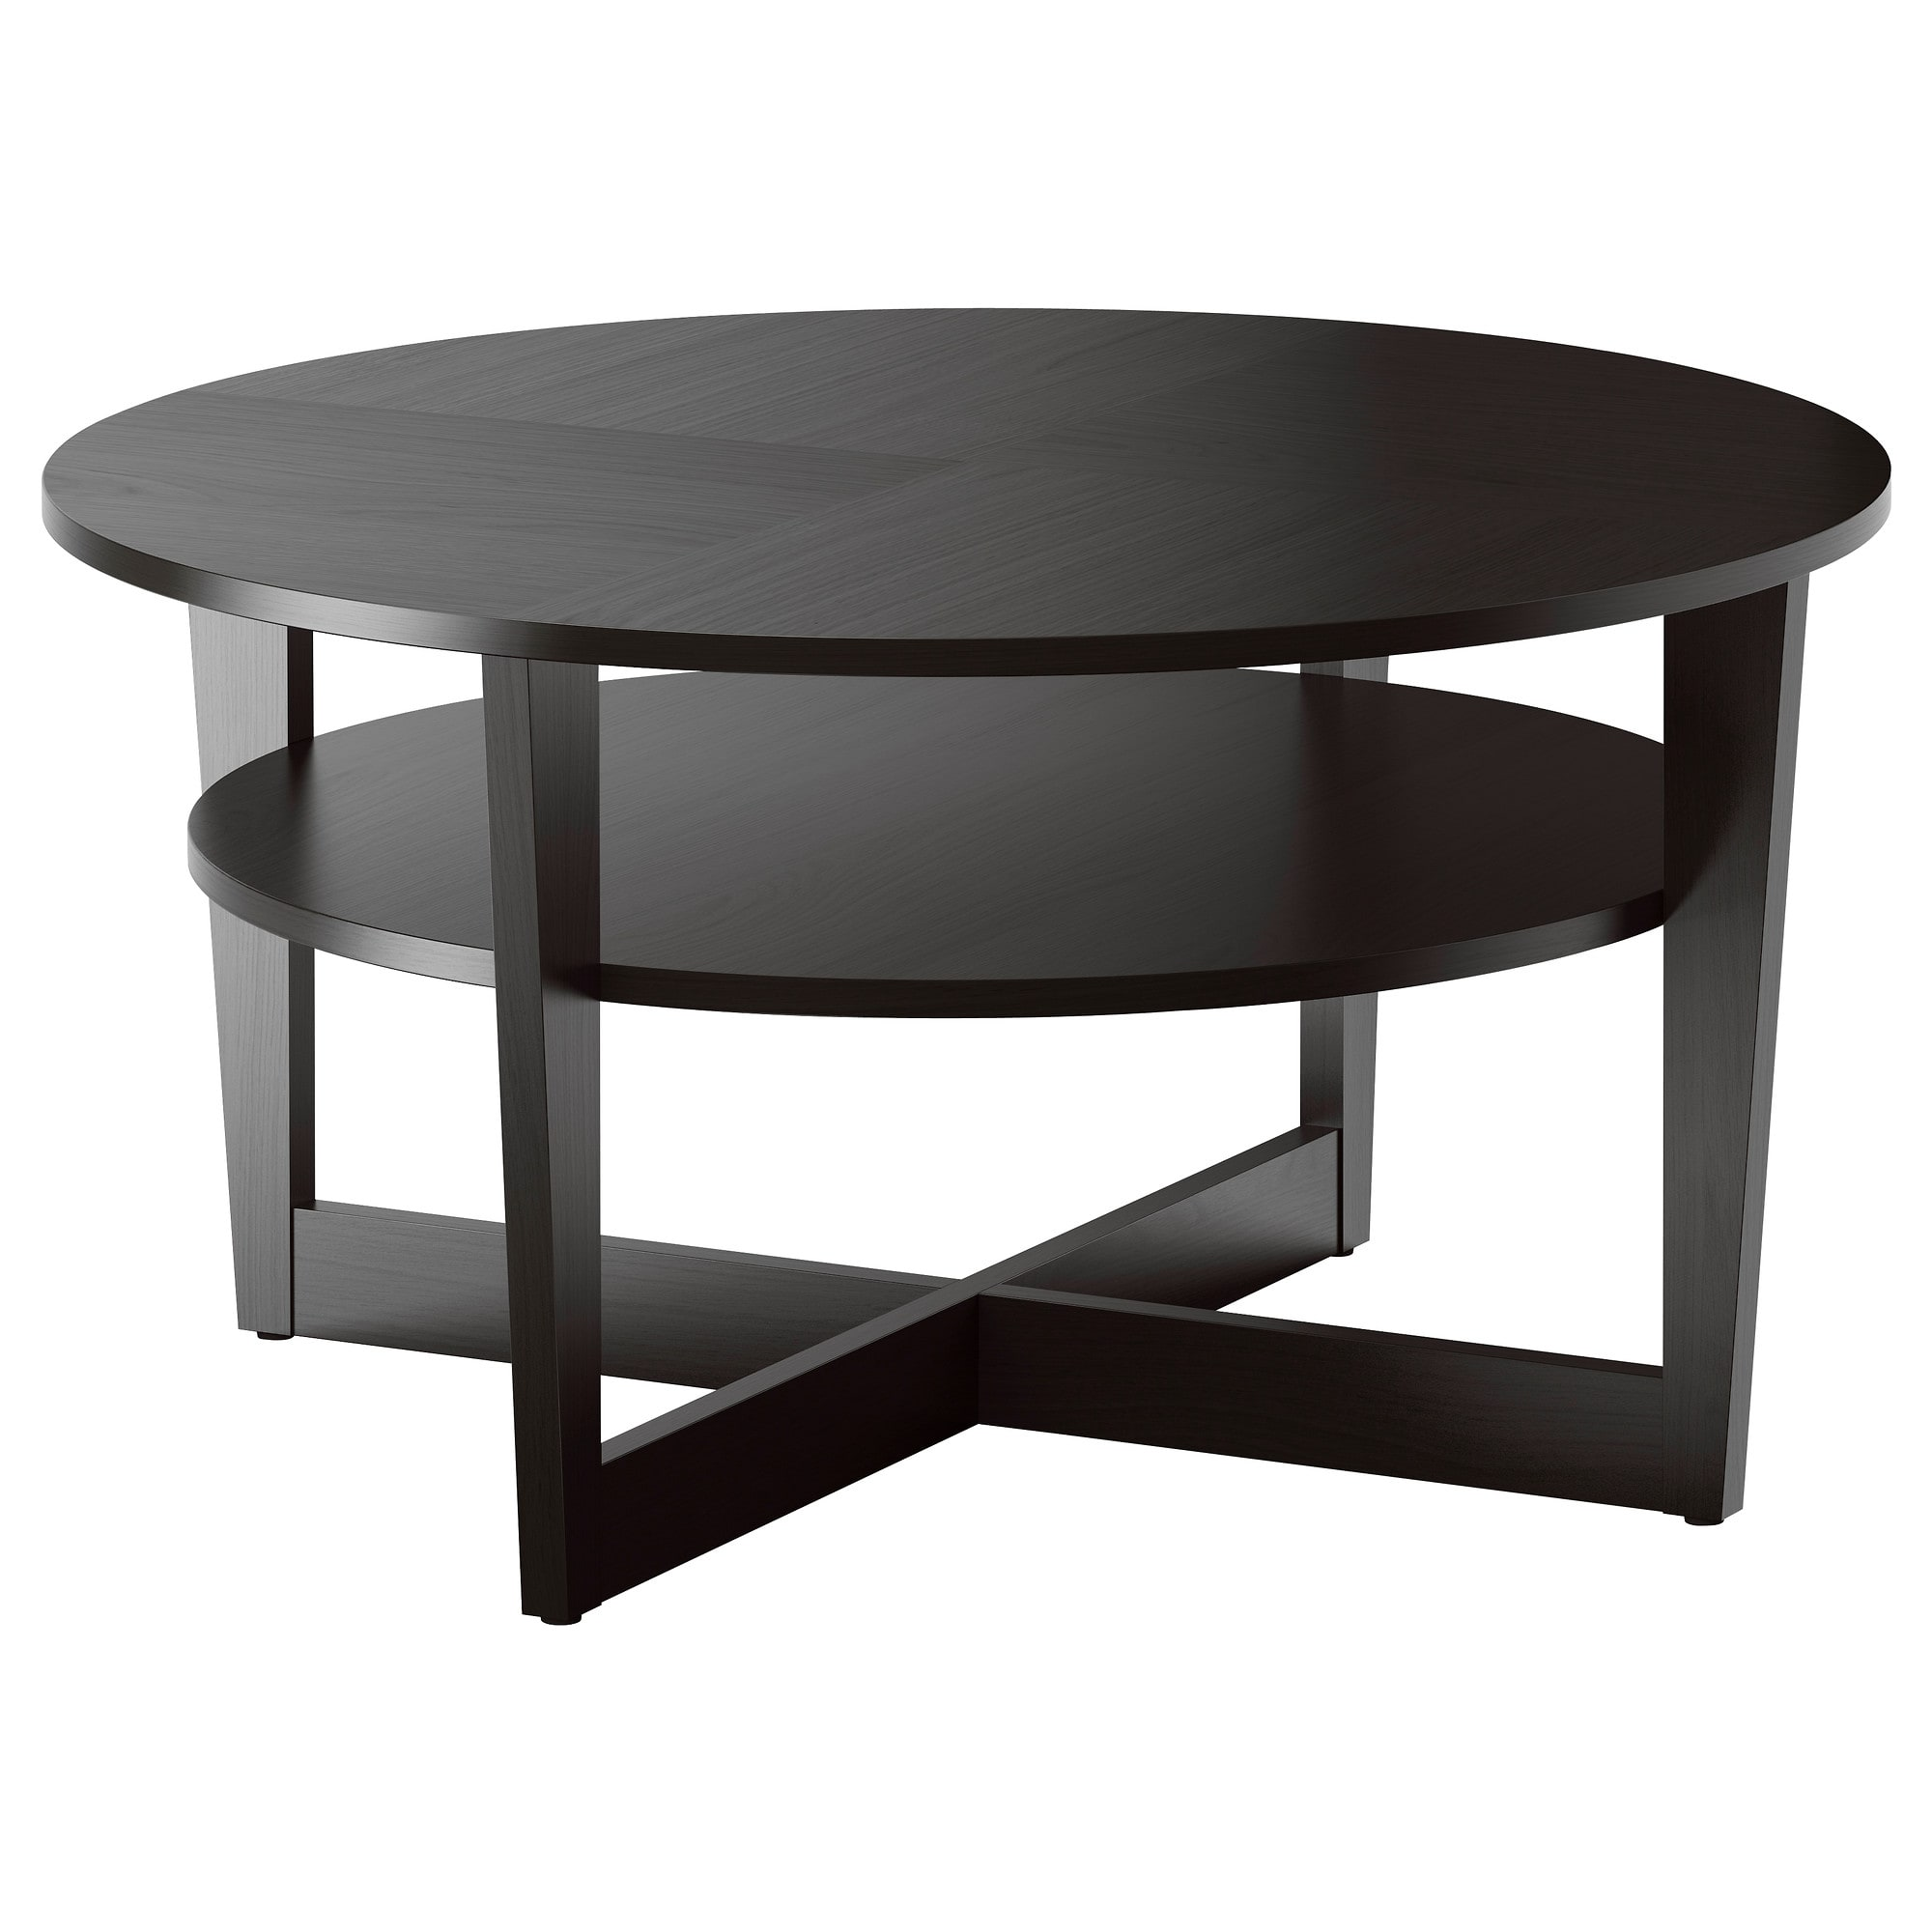 vejmon coffee table black brown ikea end tables winnipeg inch side living room high top glass dining set unfinished furniture narrow behind couch entryway cabinet outdoor umbrella